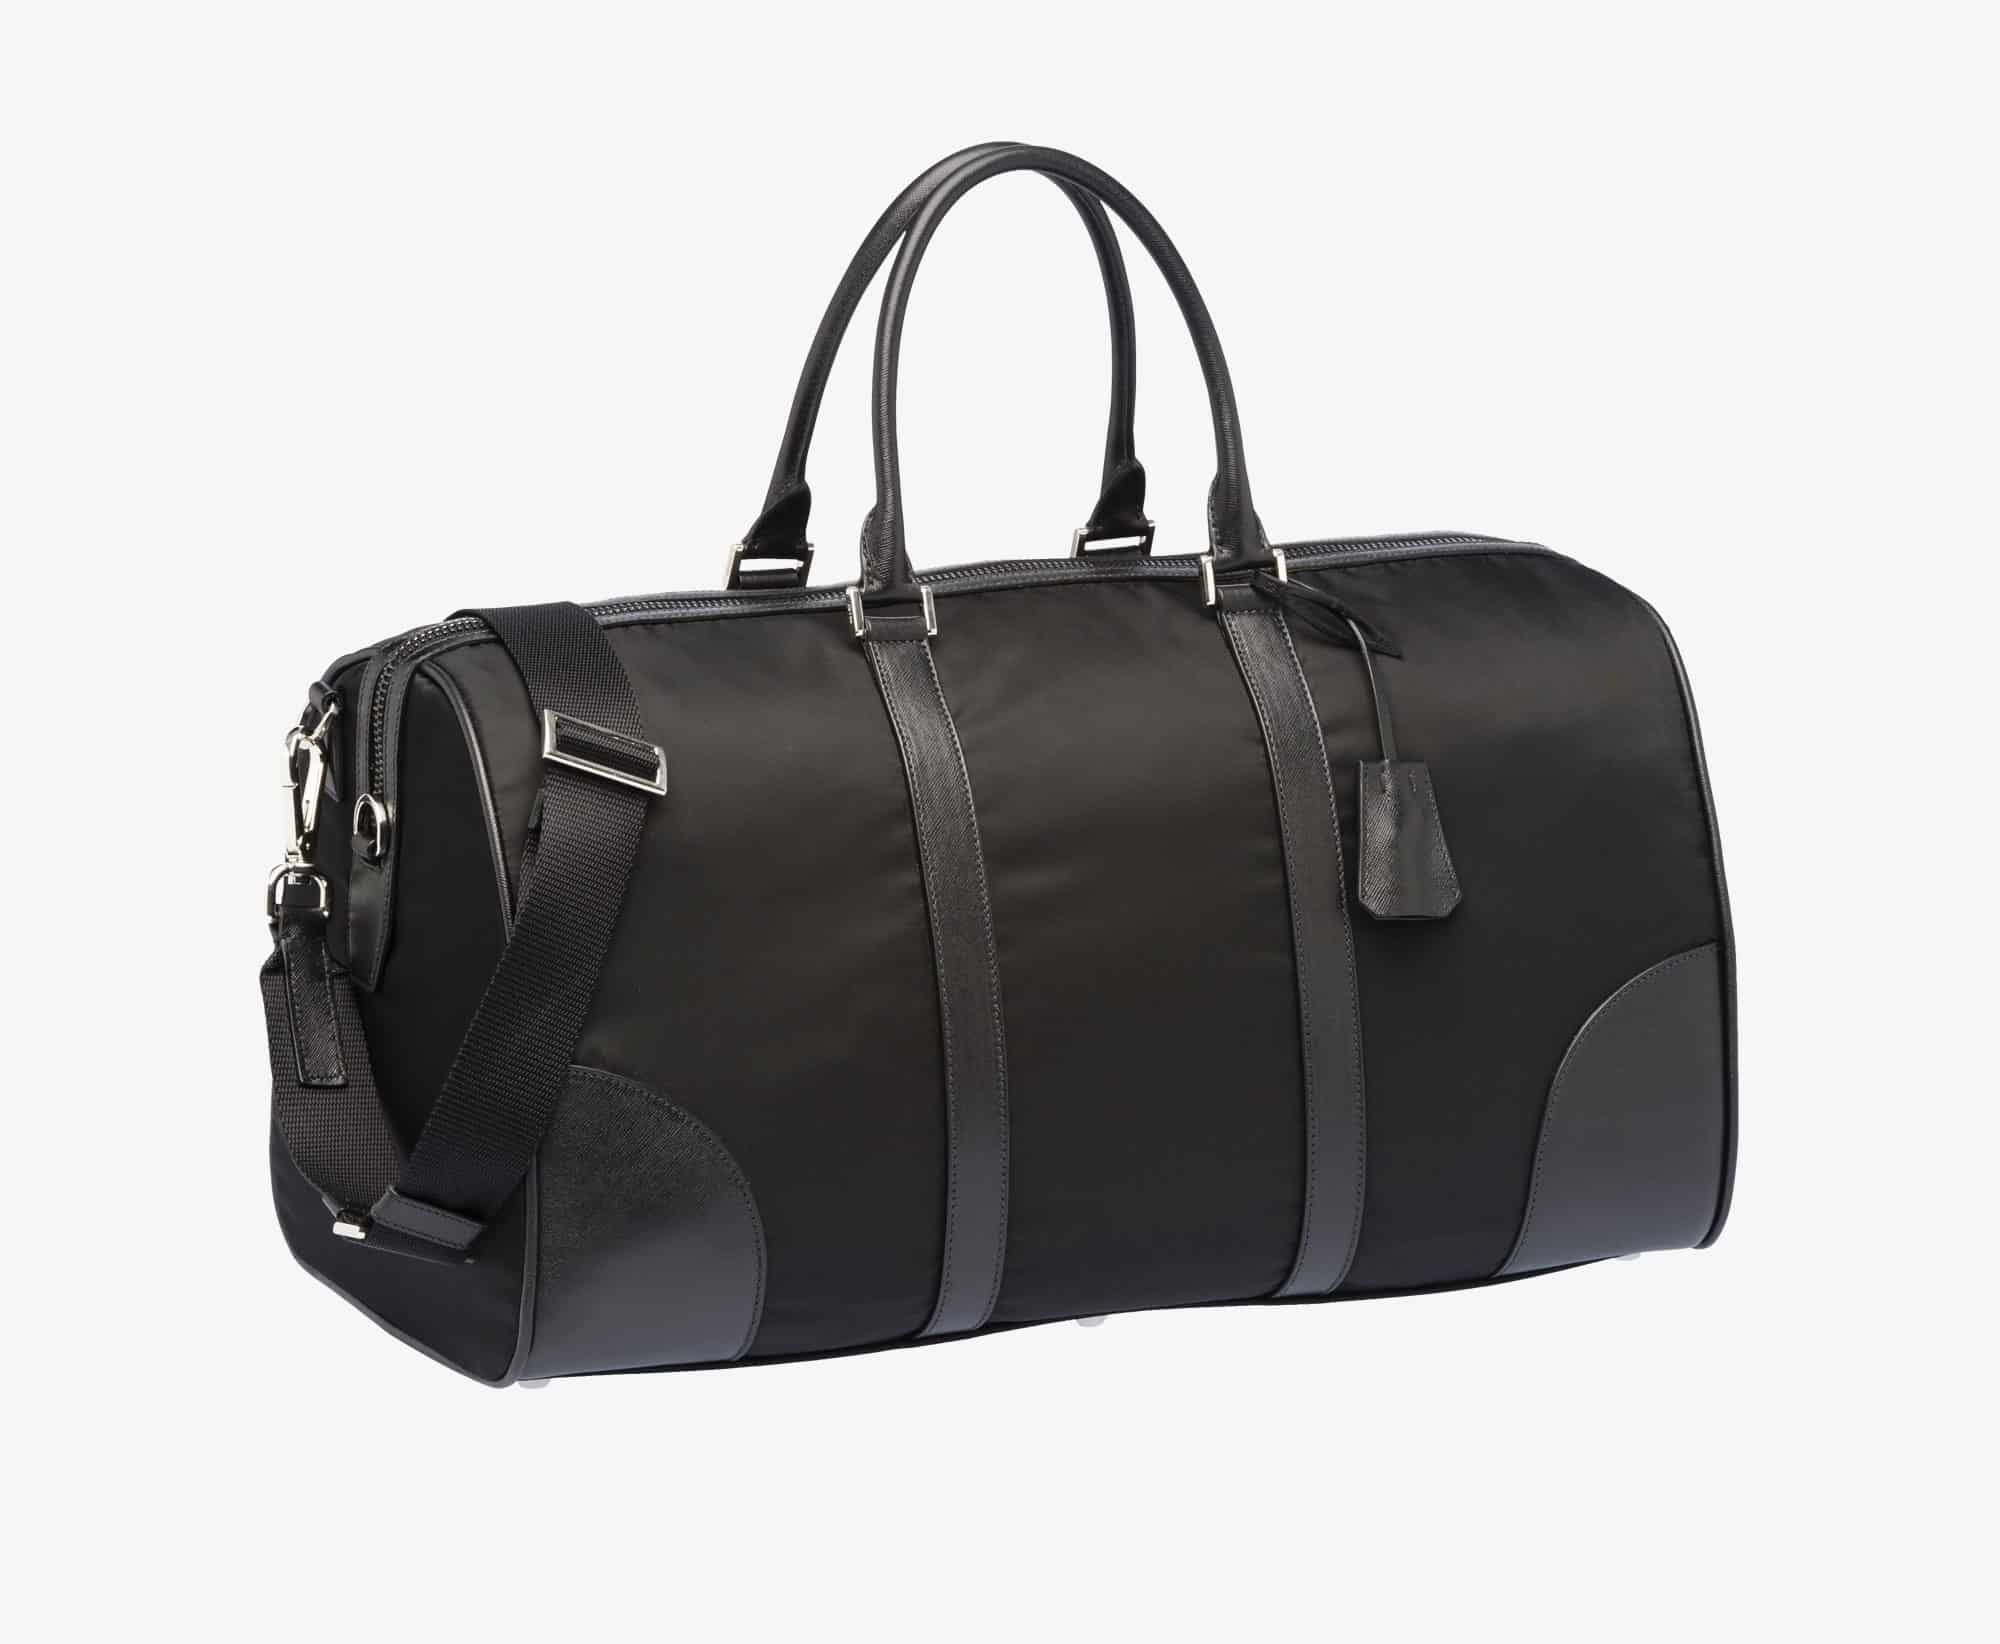 Prada Weekender Luggage Bag Black [2VC350 064 F0002 V OOO]